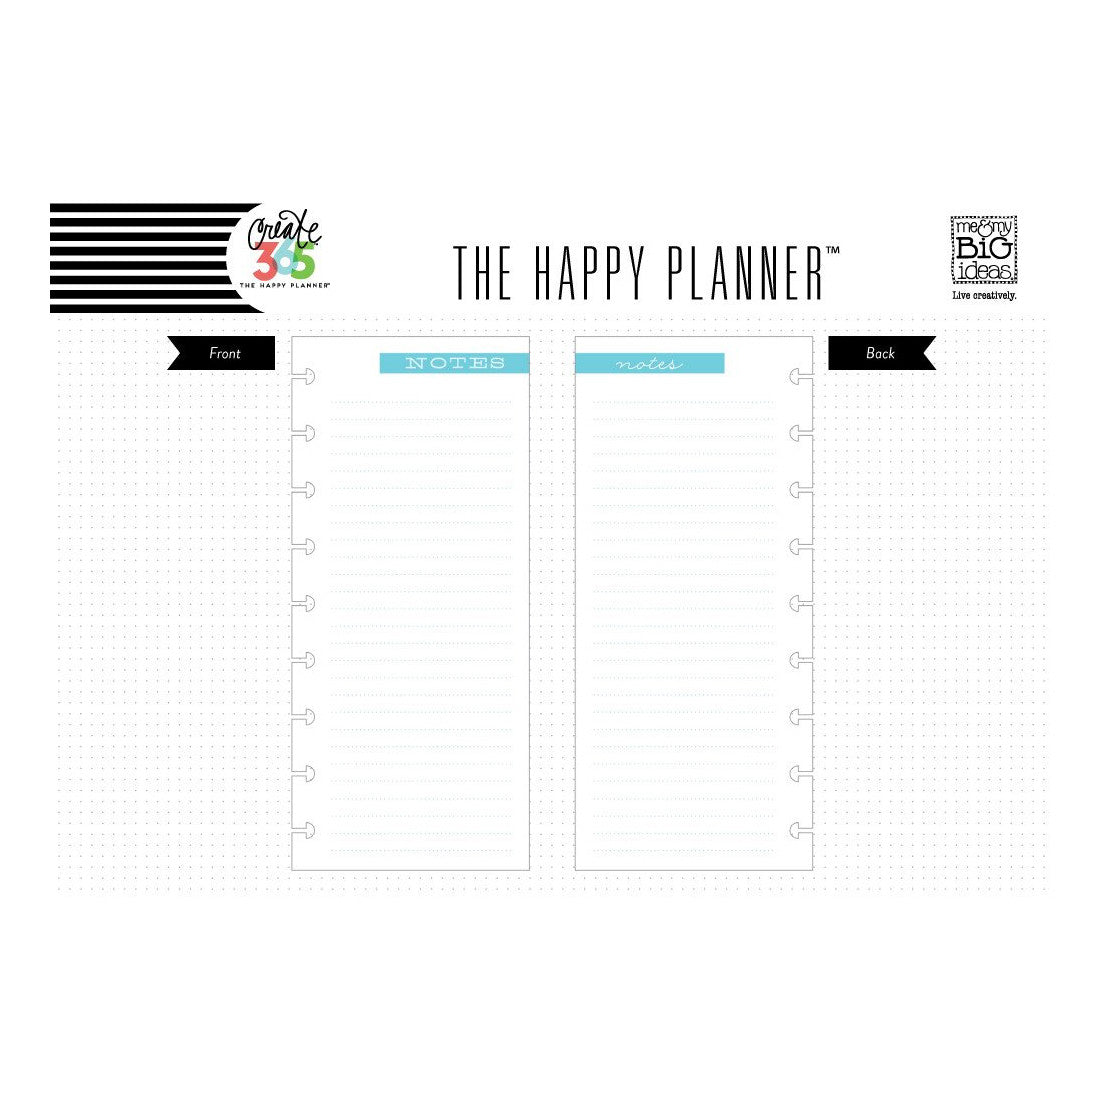 HALF-SHEET NOTE PAPER - LINED : CLASSIC HAPPY PLANNER